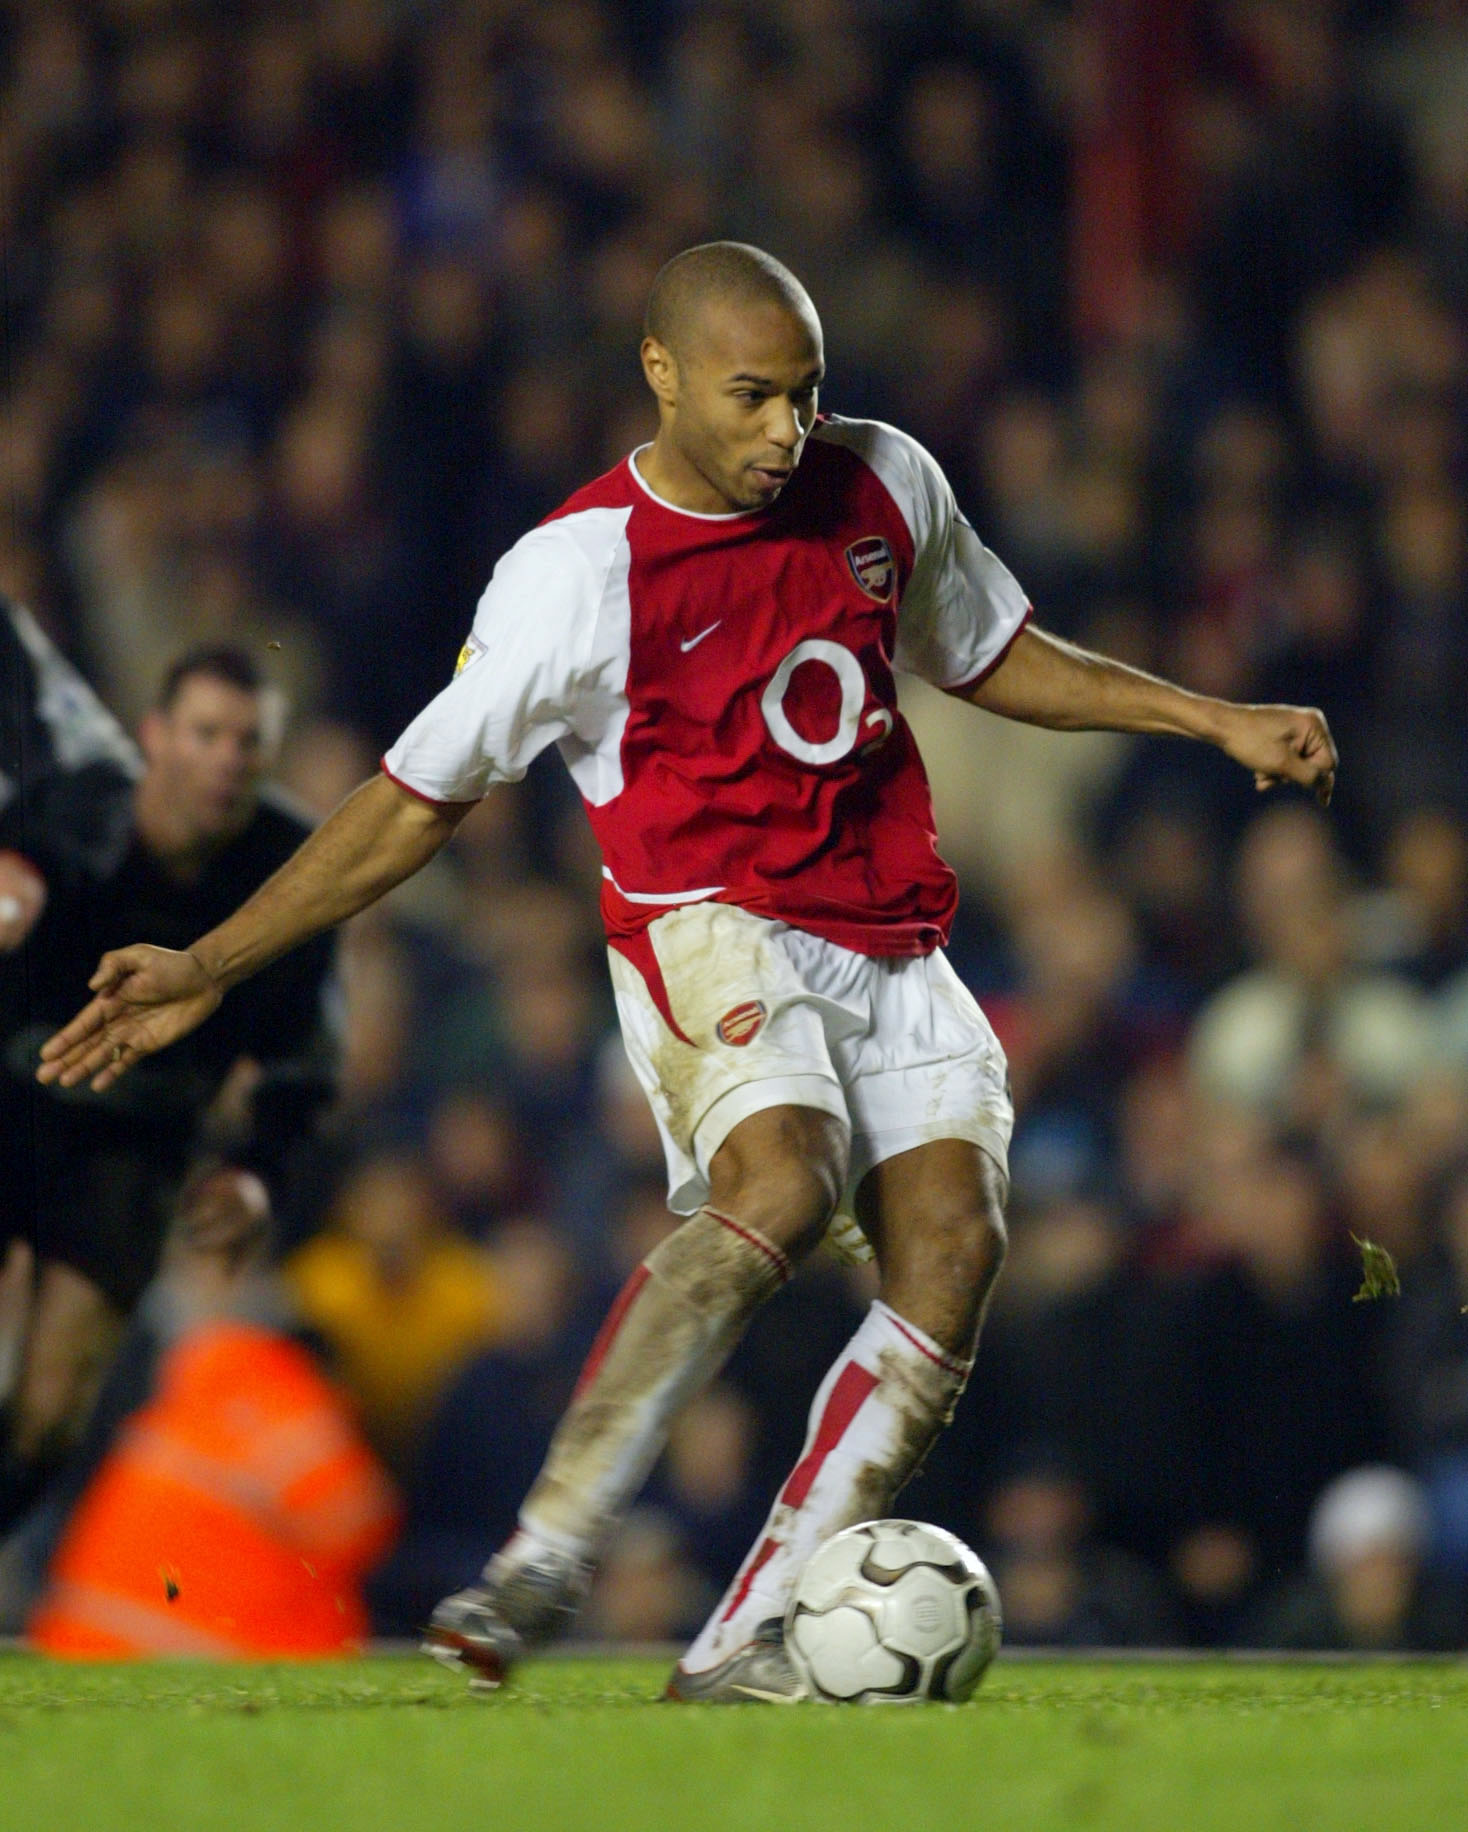 Big dick picture thierry henry #9